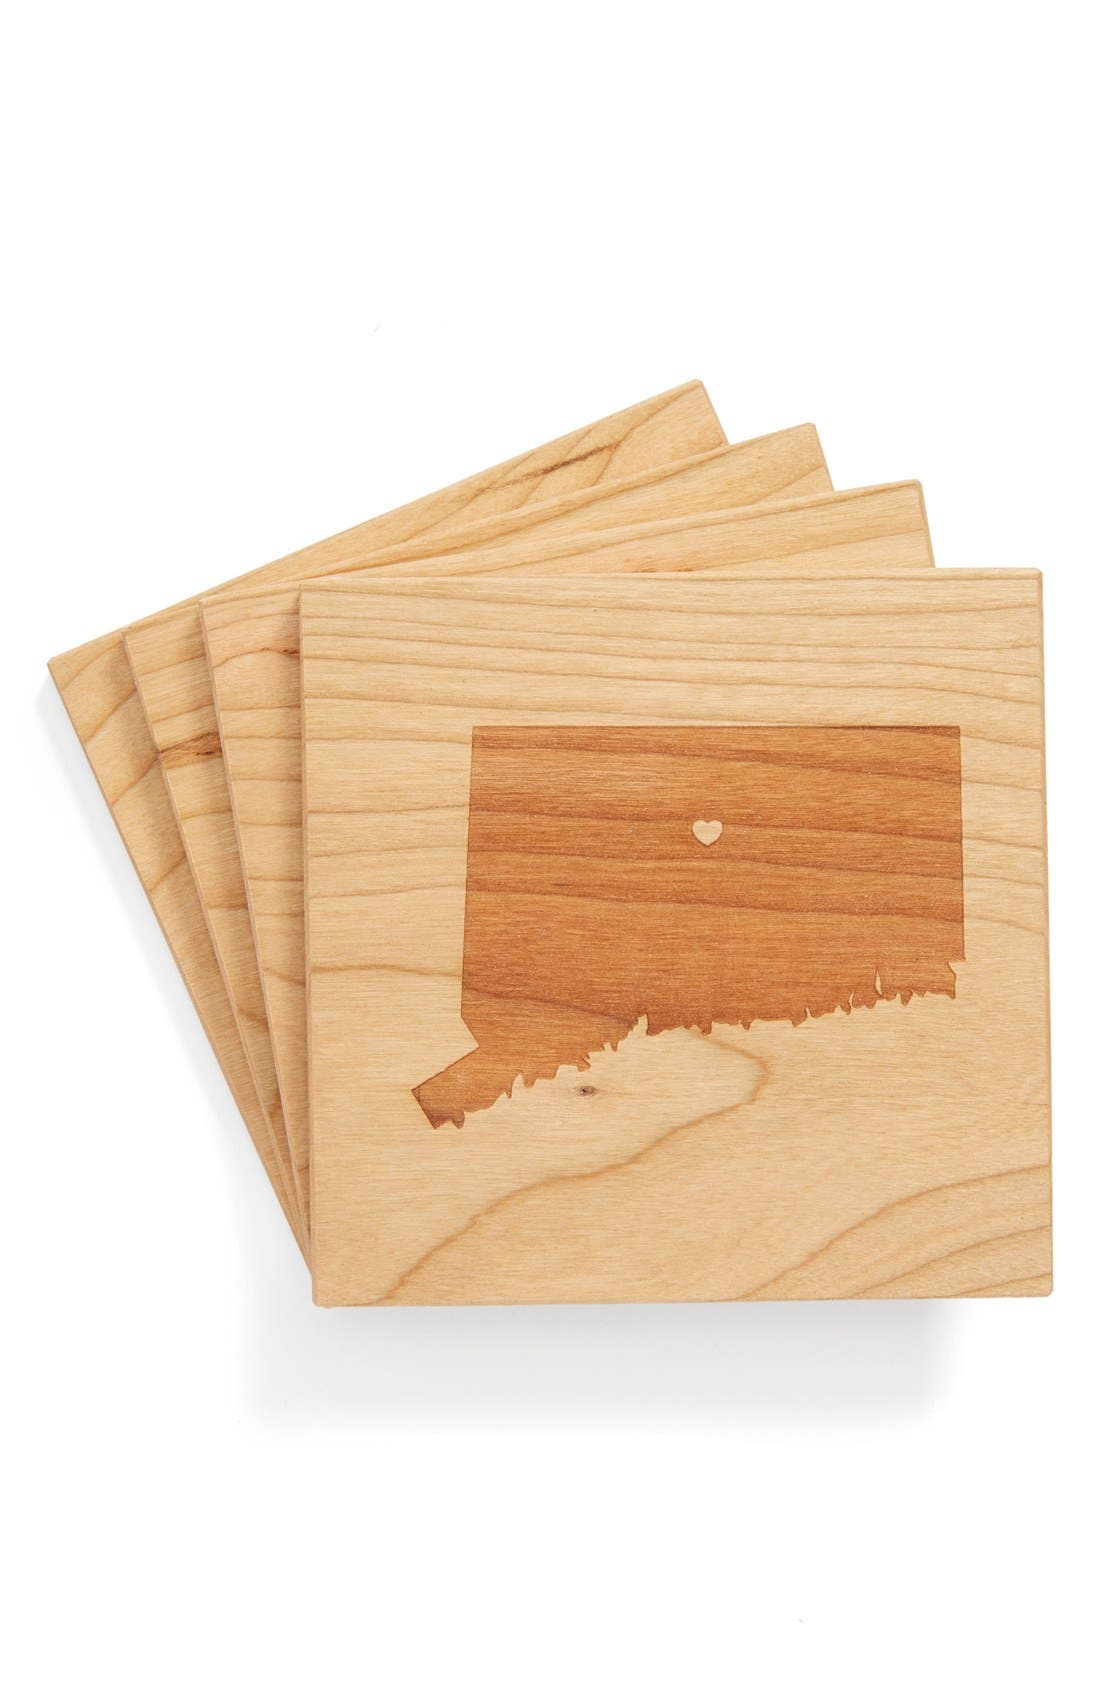 Main Image - Richwood Creations 'State Silhouette' Coasters (Set of 4)